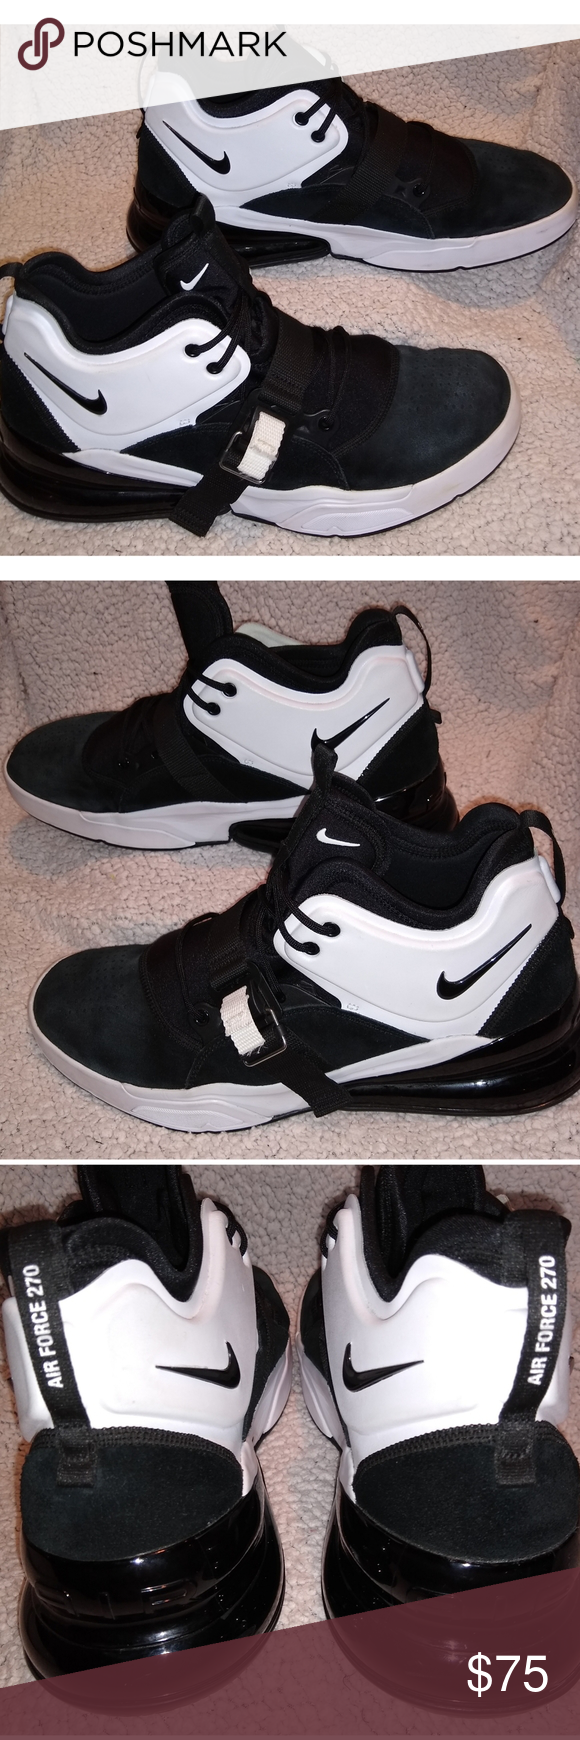 Nike Air Force 270 Size 14 Tennis Shoes